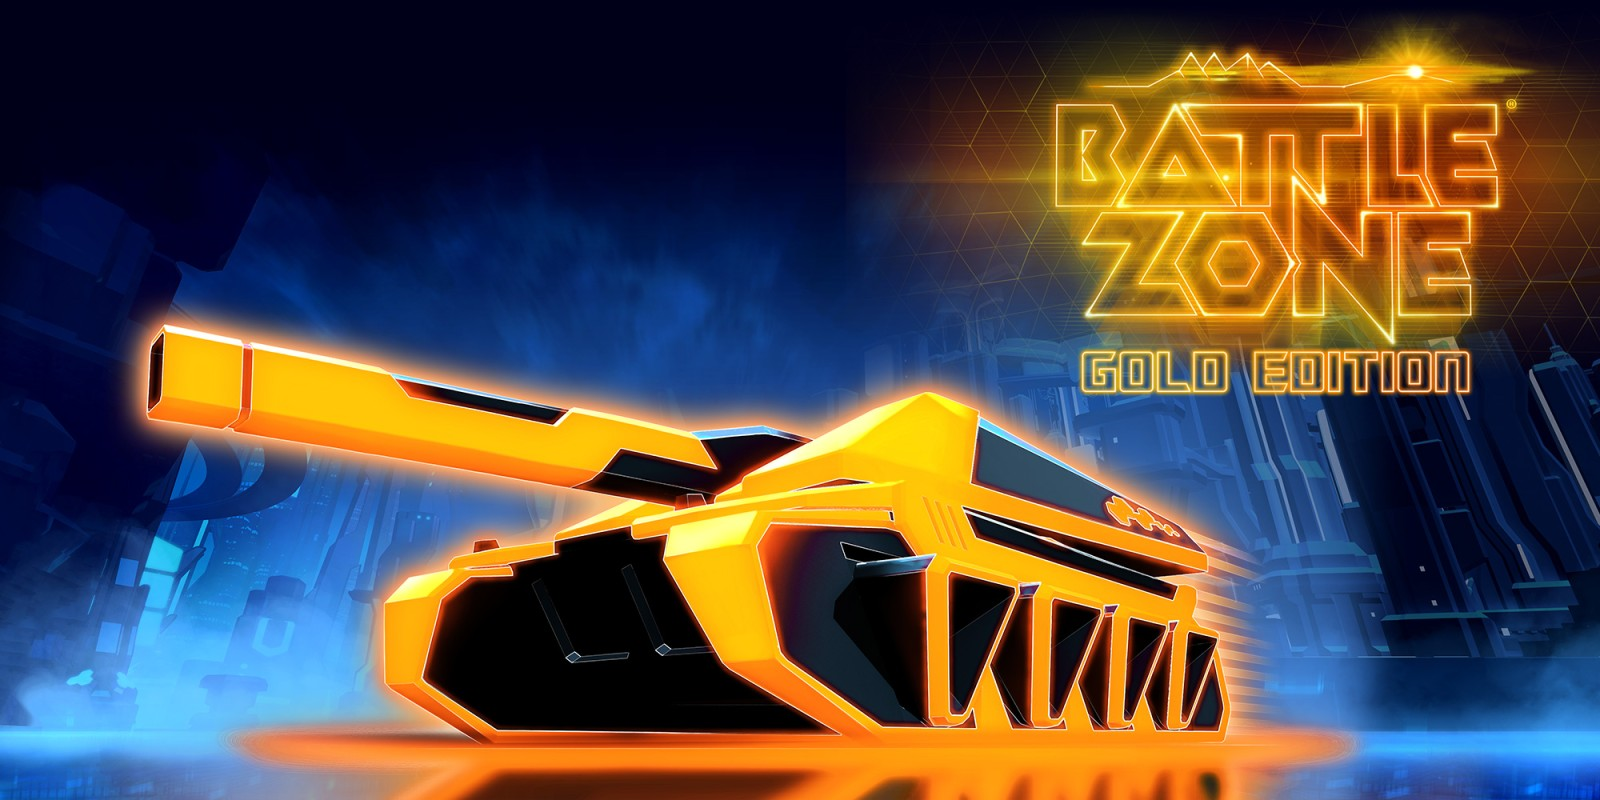 Battlezone gold edition nintendo switch review